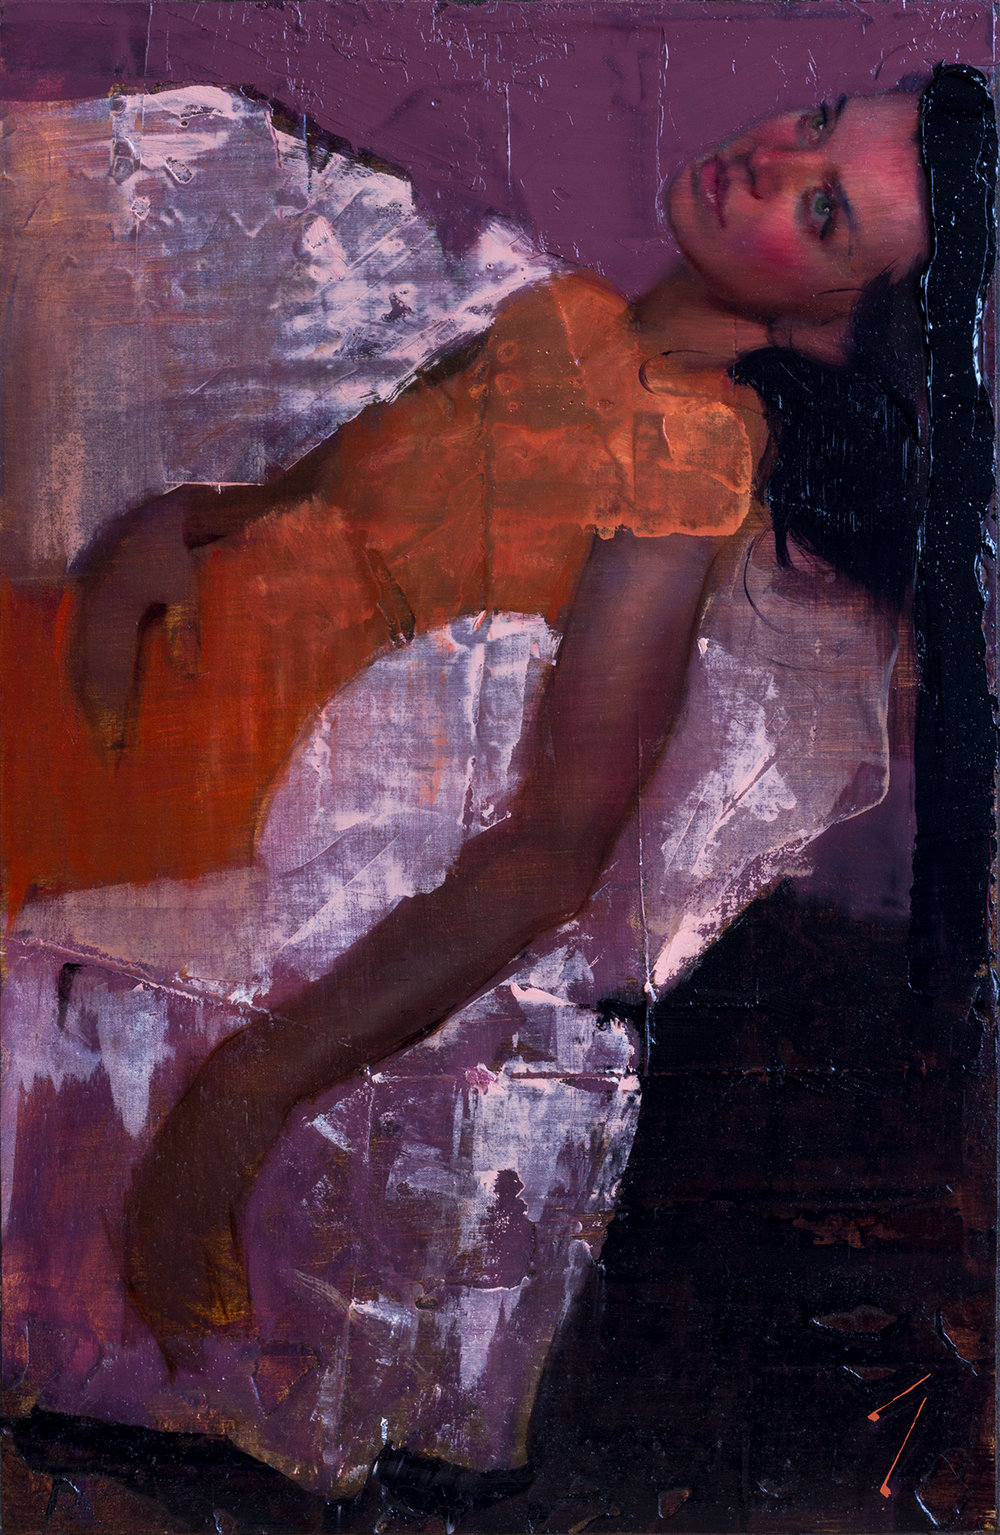 "Orange Dress, Oil on linen mounted panel, 13x22"" (33x565 cm)"